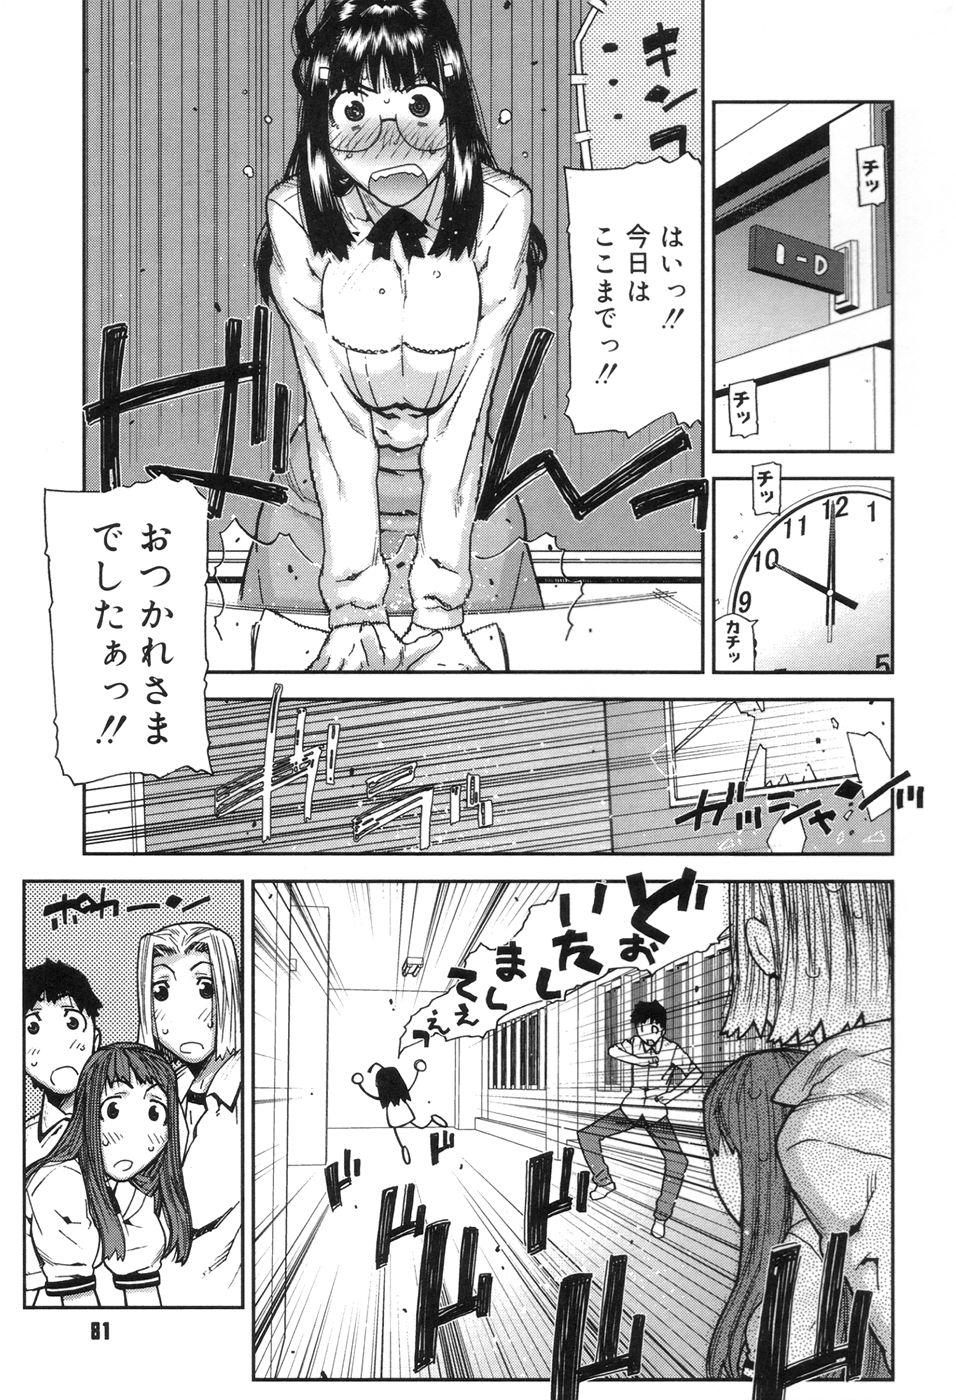 Onee-chan to issho 82